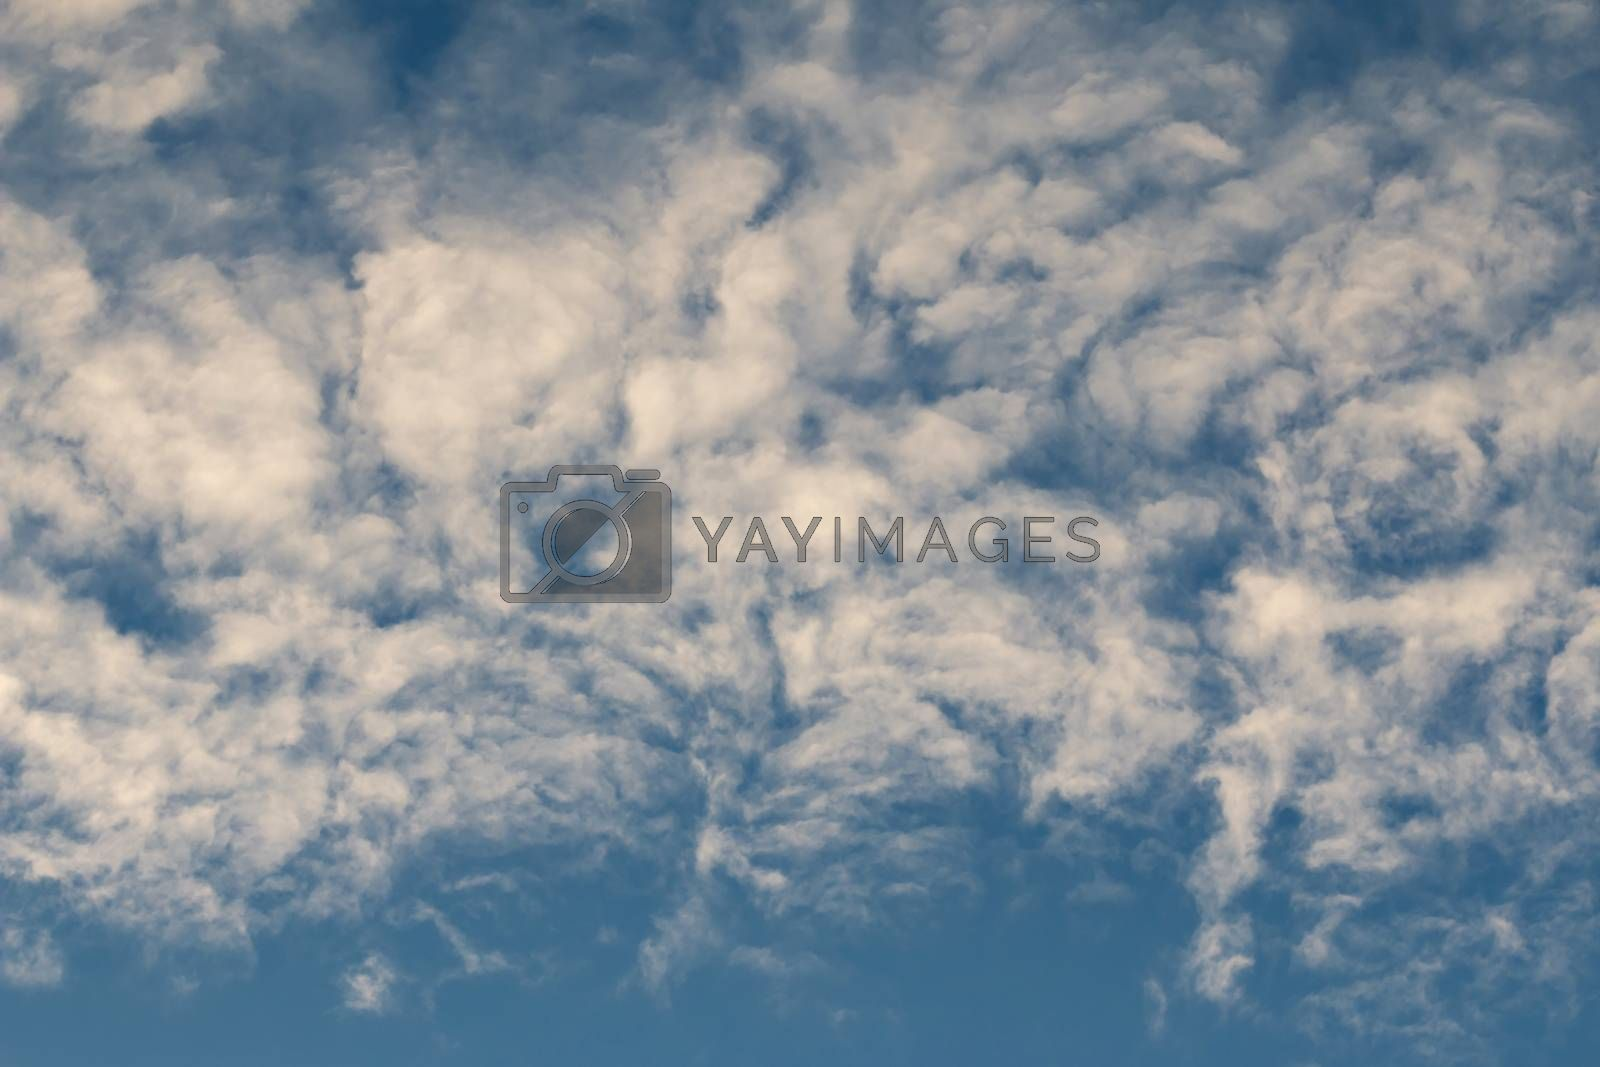 Royalty free image of bizarre clouds by Mibuch